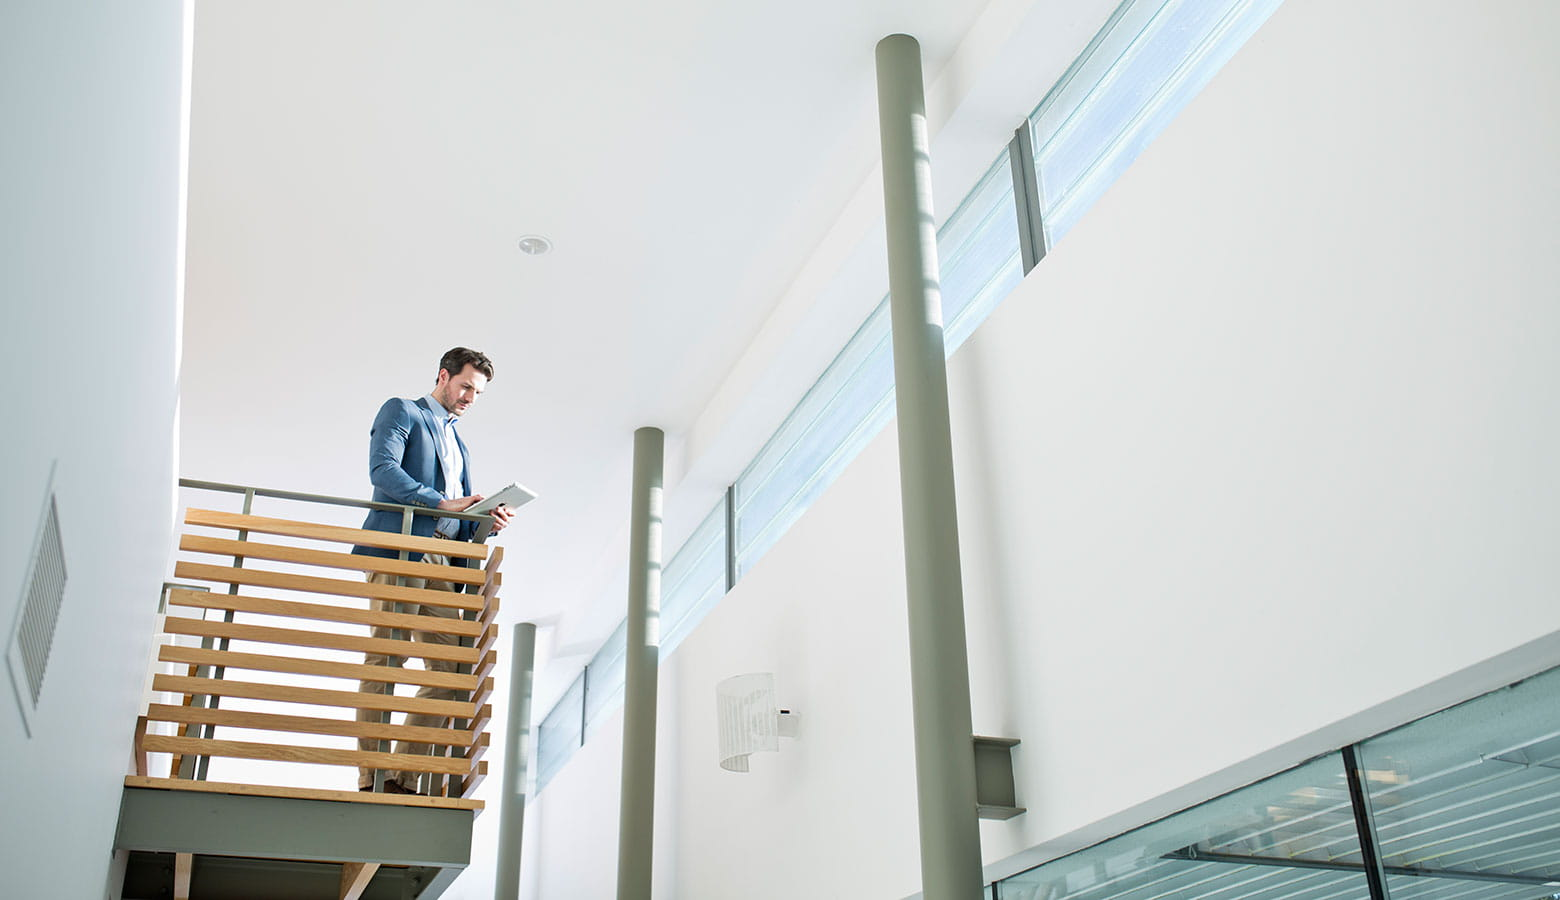 Businessman looking at tablet device while standing on balcony in office environment